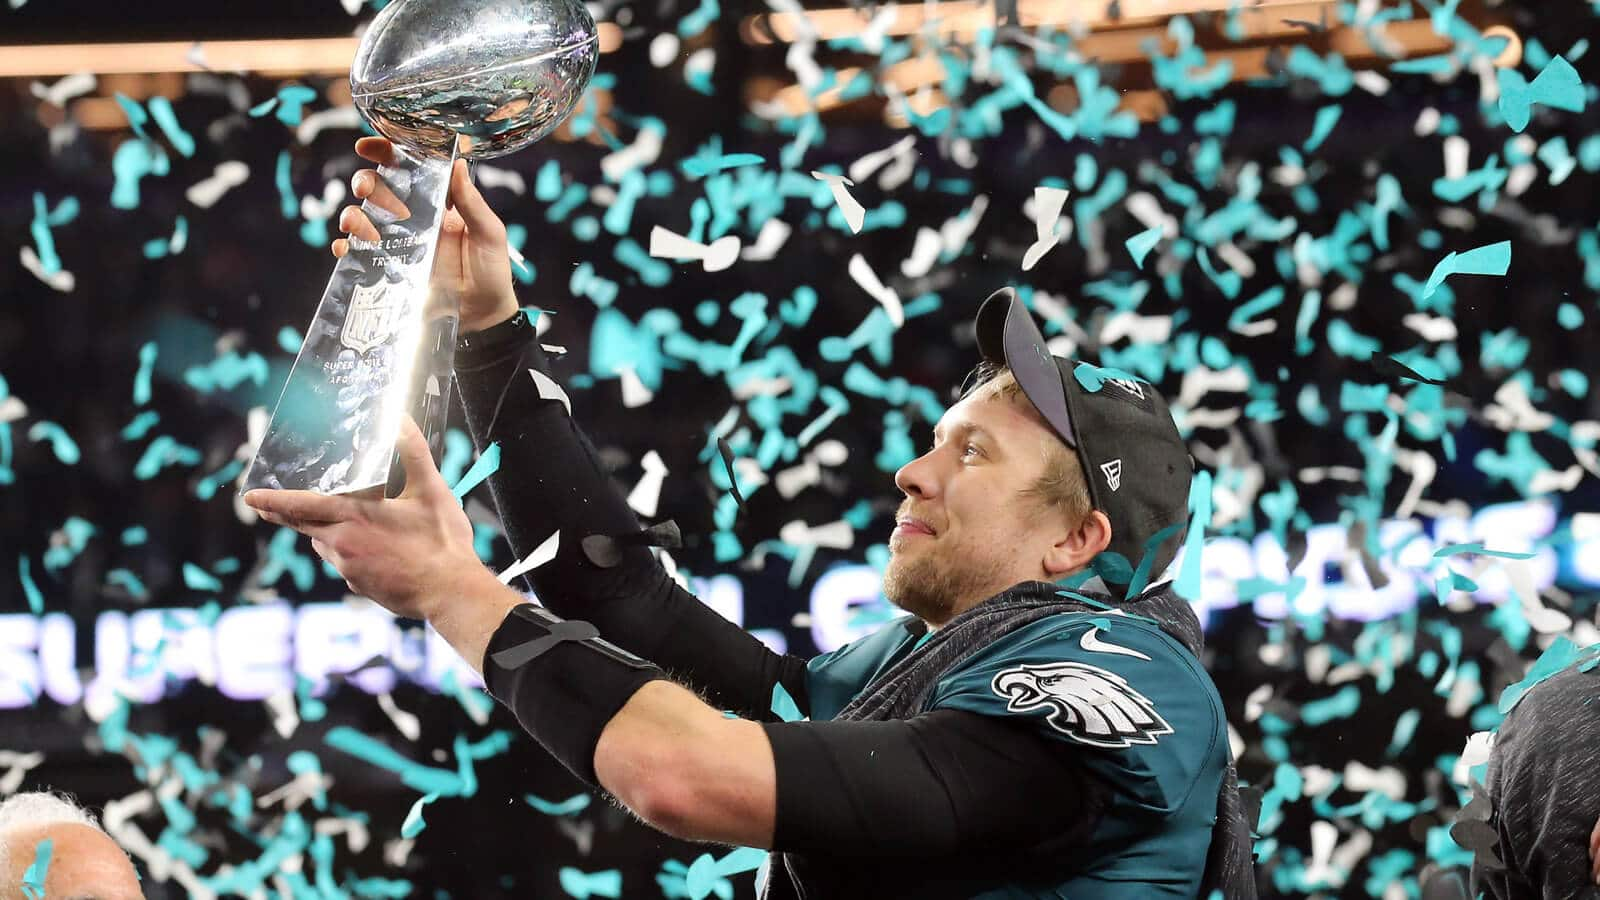 Nick Foles hoists the Super Bowl trophy after leading the Philadelphia Eagles to victory over Tom Brady and the fading New England Patriots. The Super Bowl MVP is one of our Week 15 Sneaky Plays for Your Daily Fantasy Football Lineup.